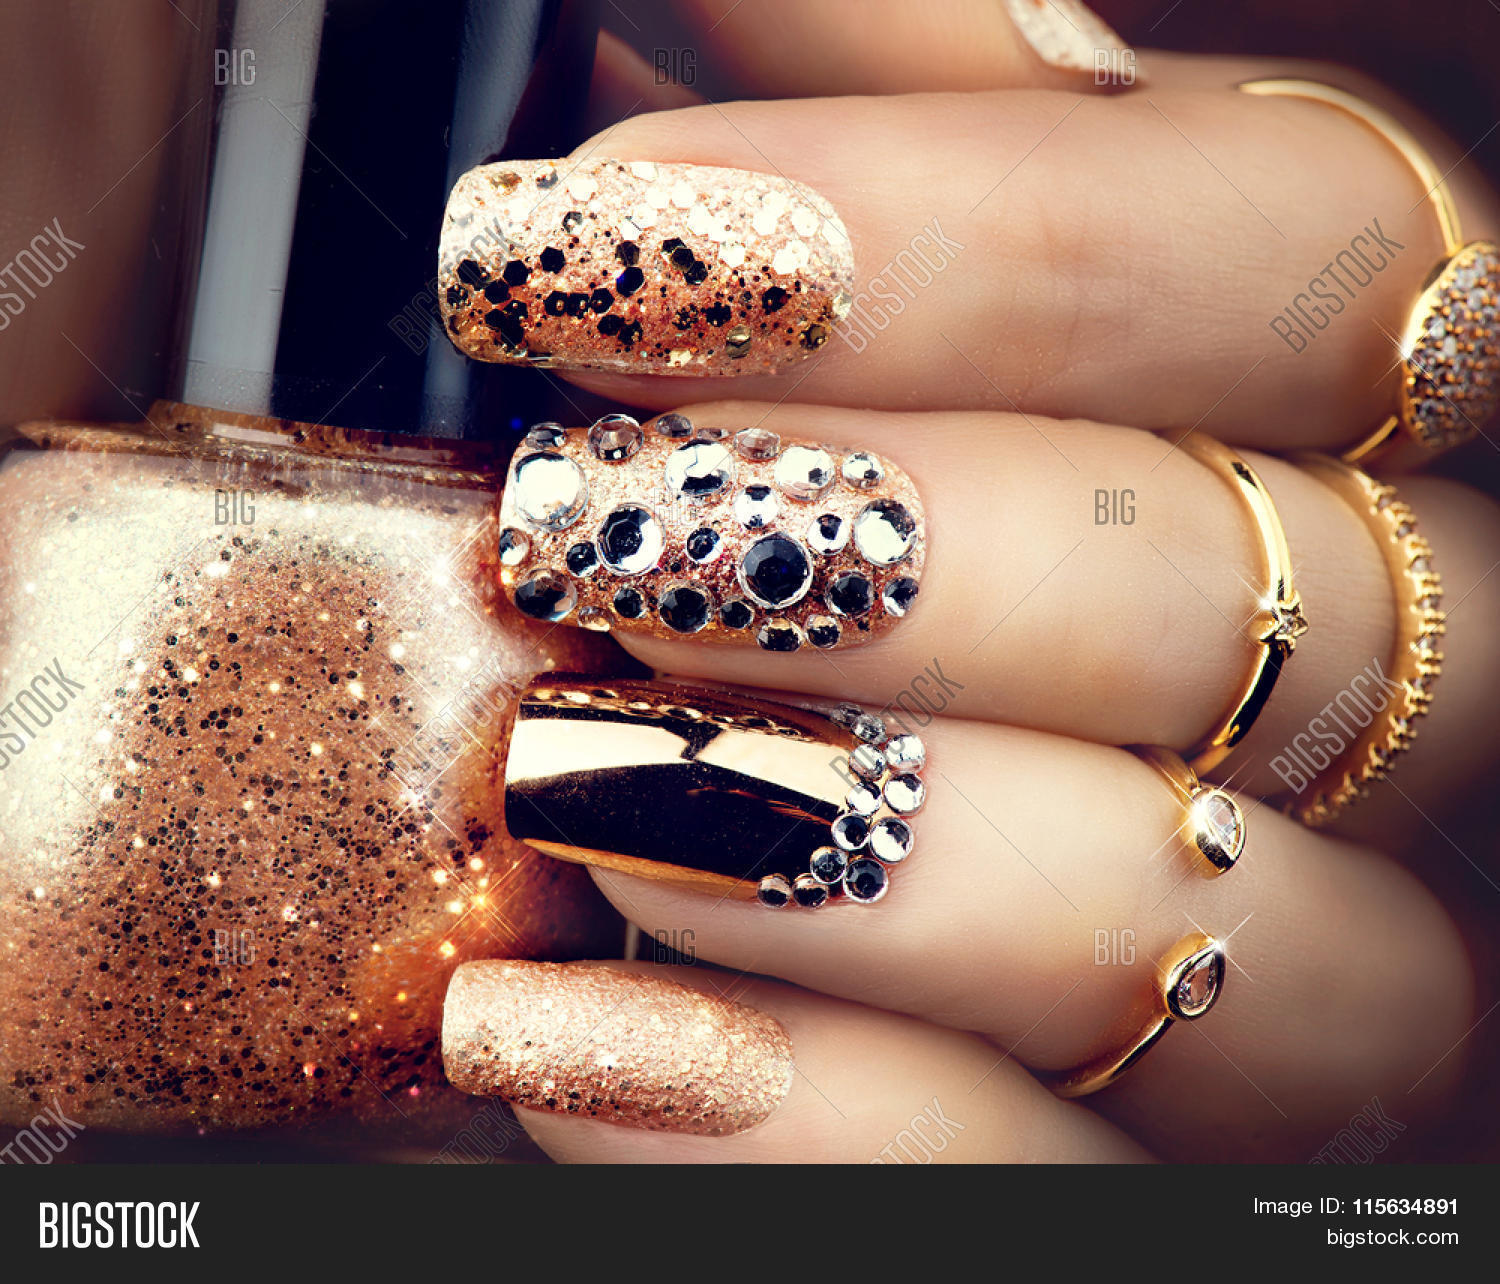 Golden Nail Art Image & Photo (Free Trial) | Bigstock